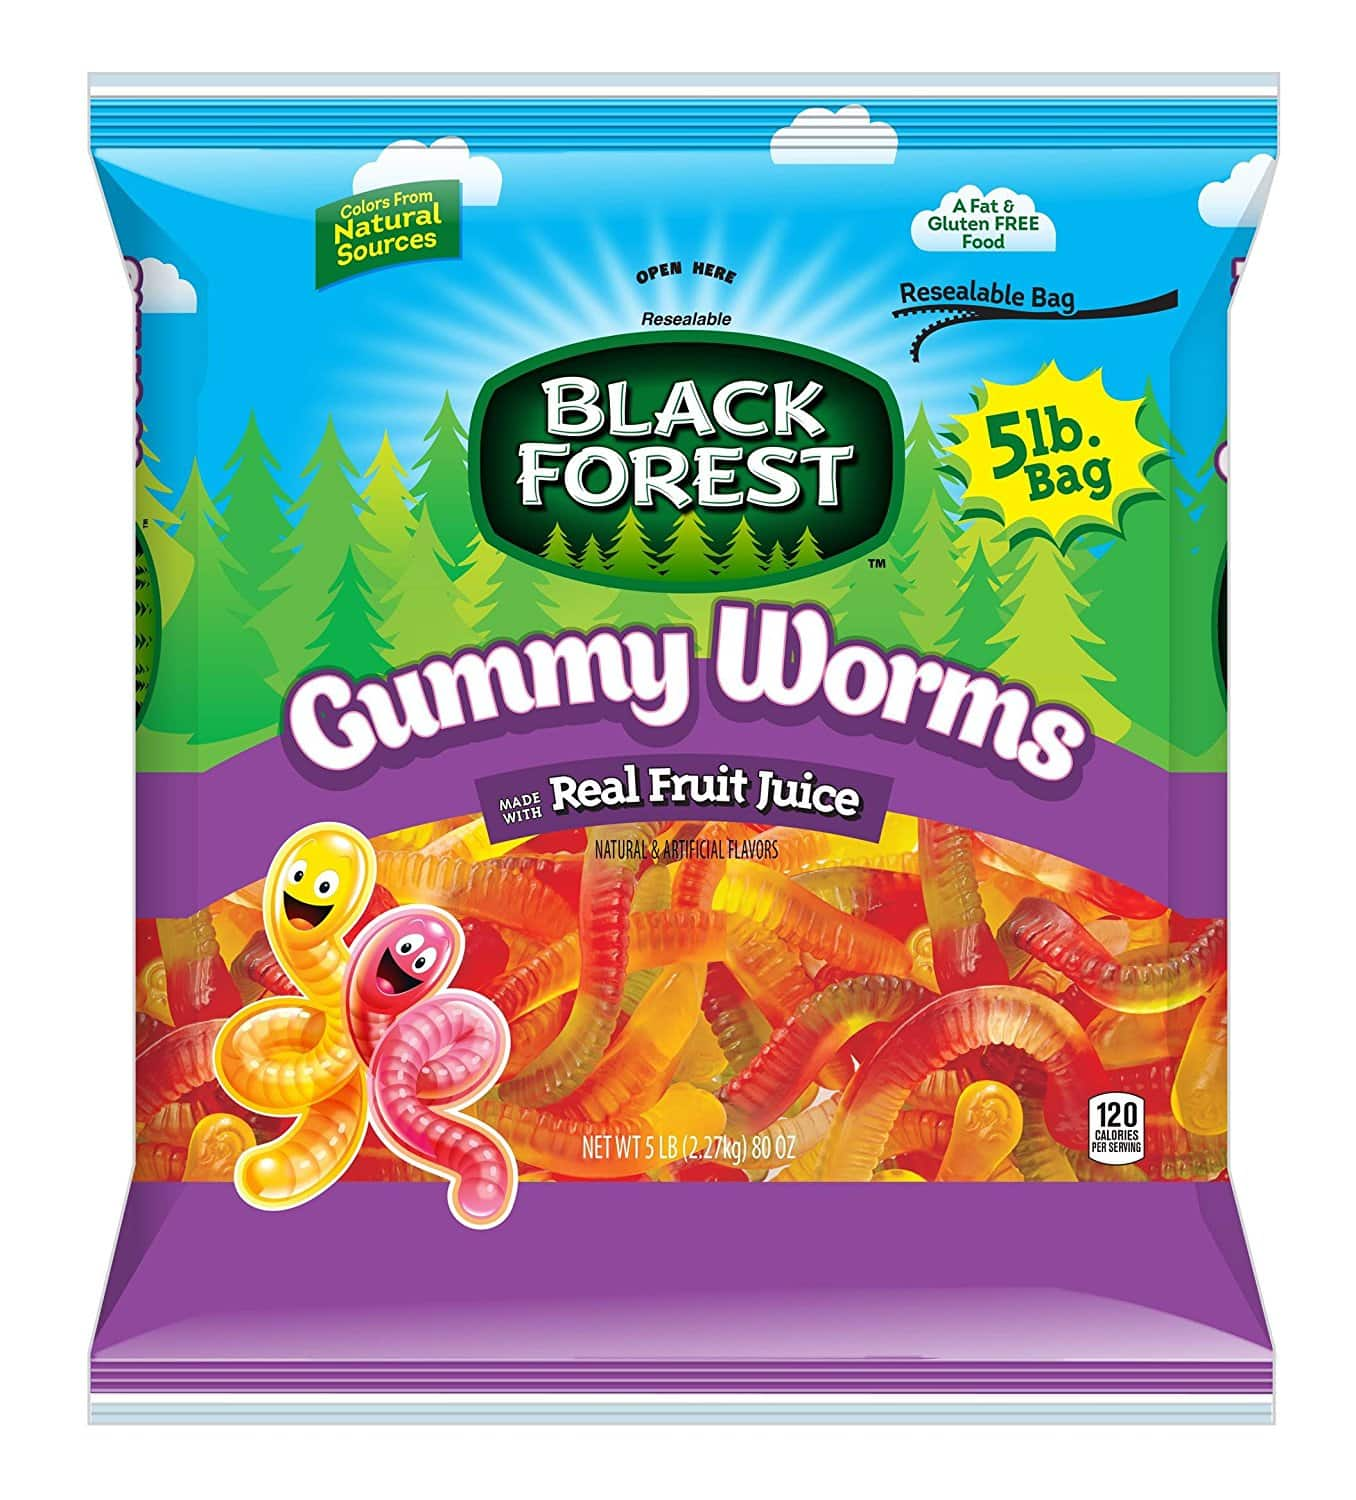 5lb Bag of Black Forest Gummy Worms Candy for $9.99 AC + Free Prime Shipping